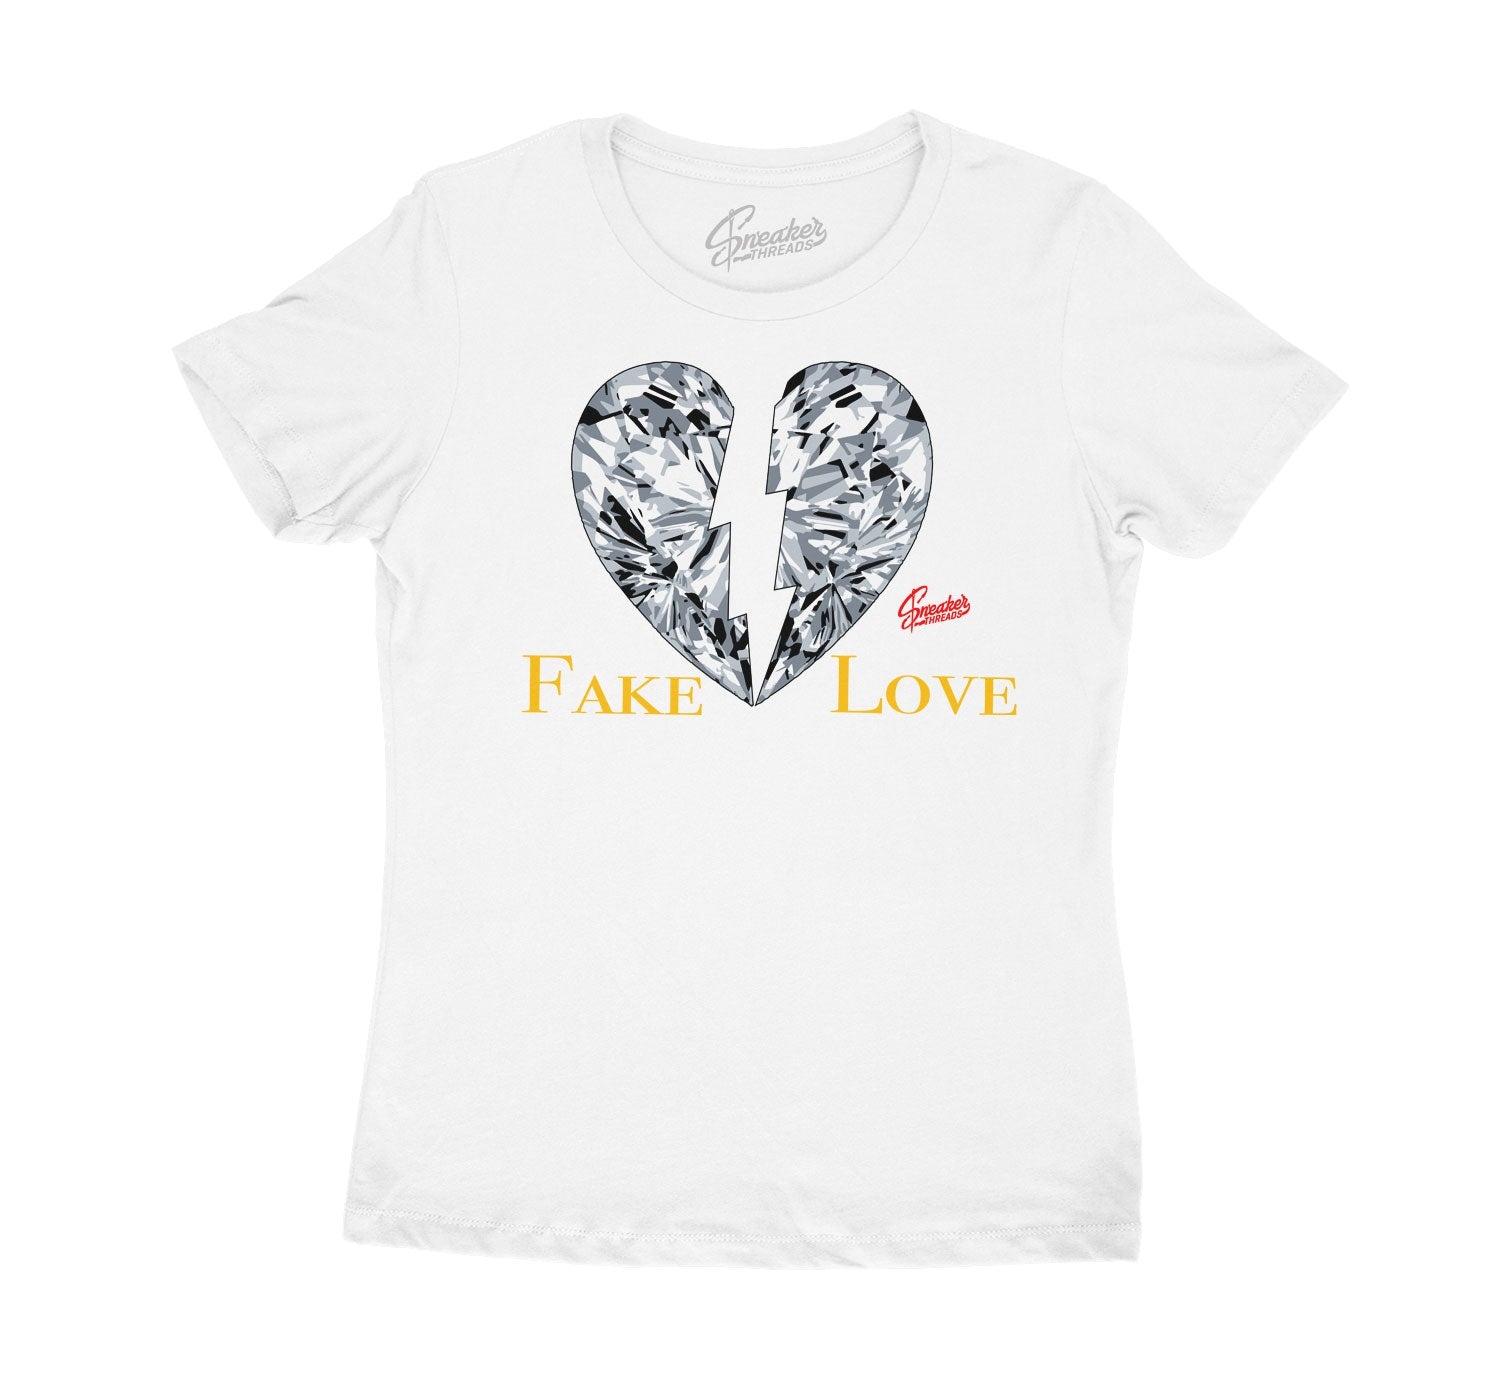 Womens Cool Grey 3 Shirt - Fake Love - White